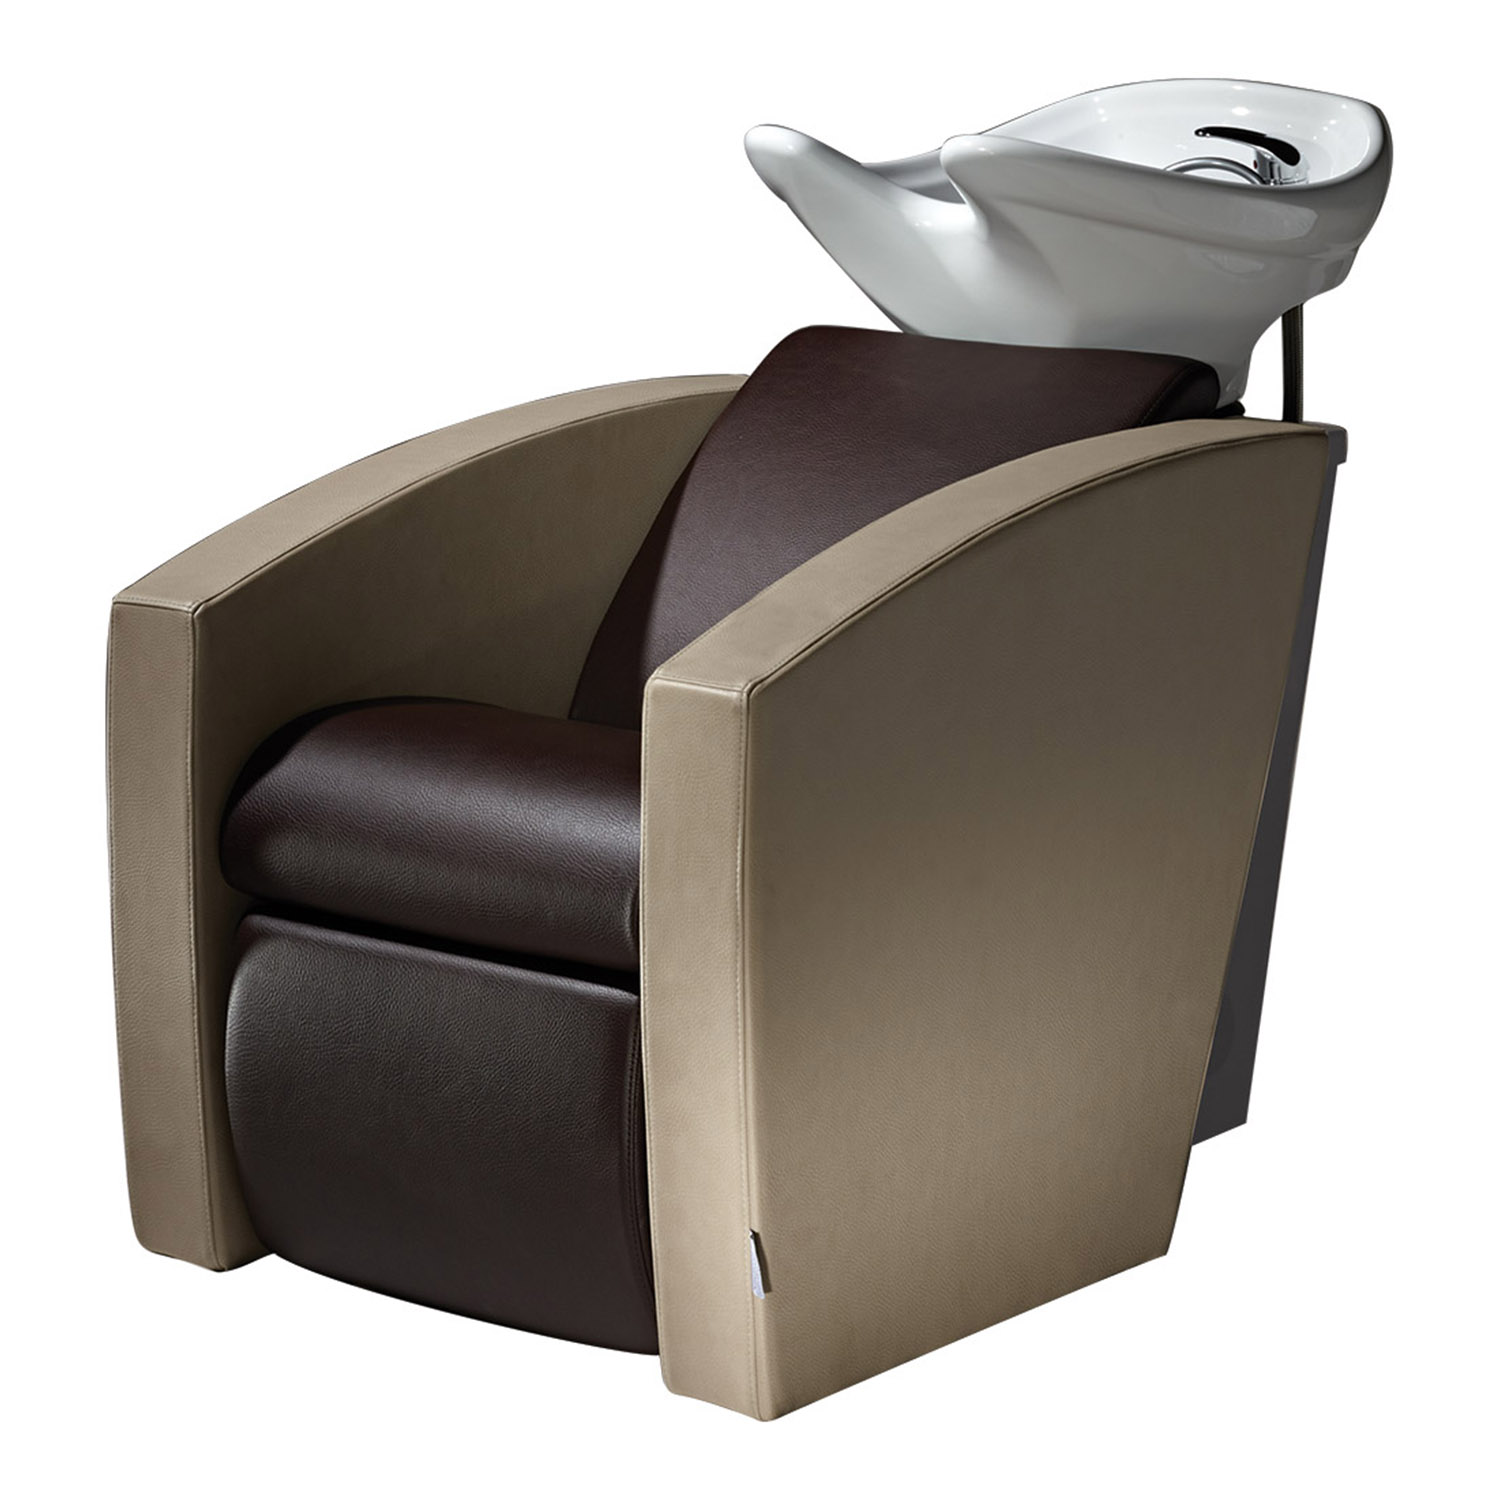 Mirage Shampoo Bowl with Chair by Salon Ambience  main product image